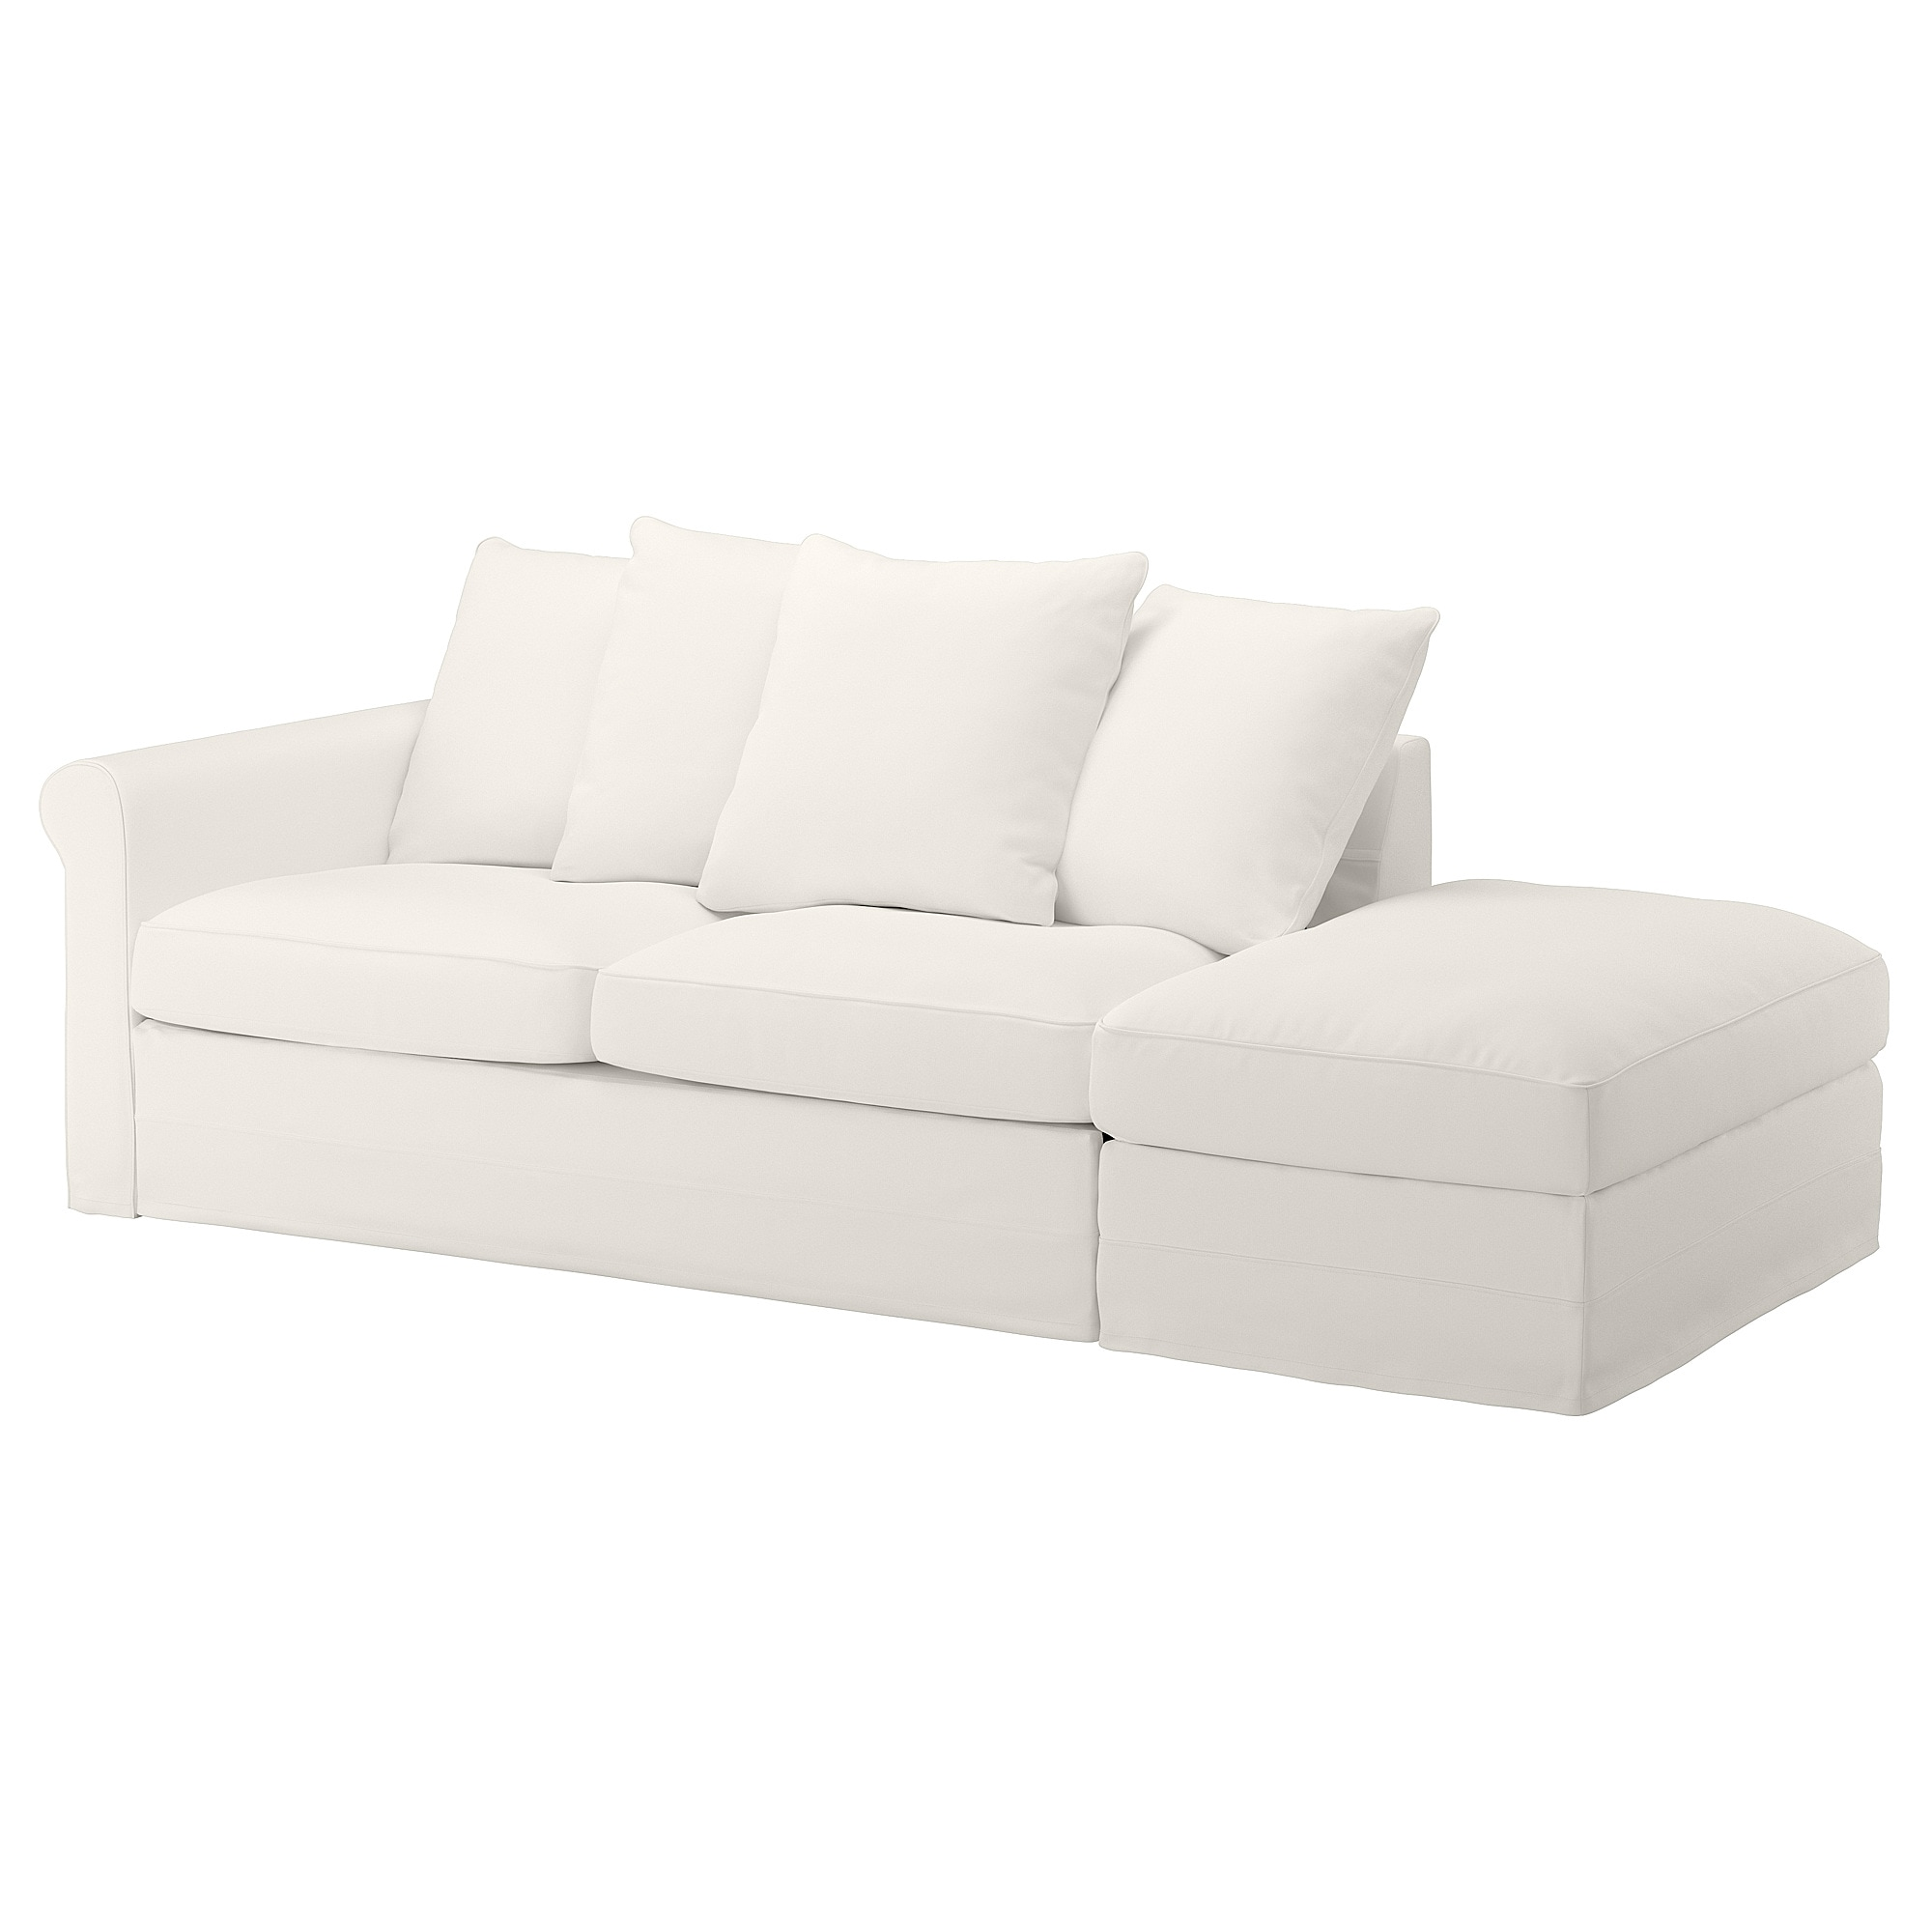 gr nlid 3 seat sofa bed with open end inseros white ikea rh ikea com Extra Deep Seat Sofas Deep Seat Sofas Style